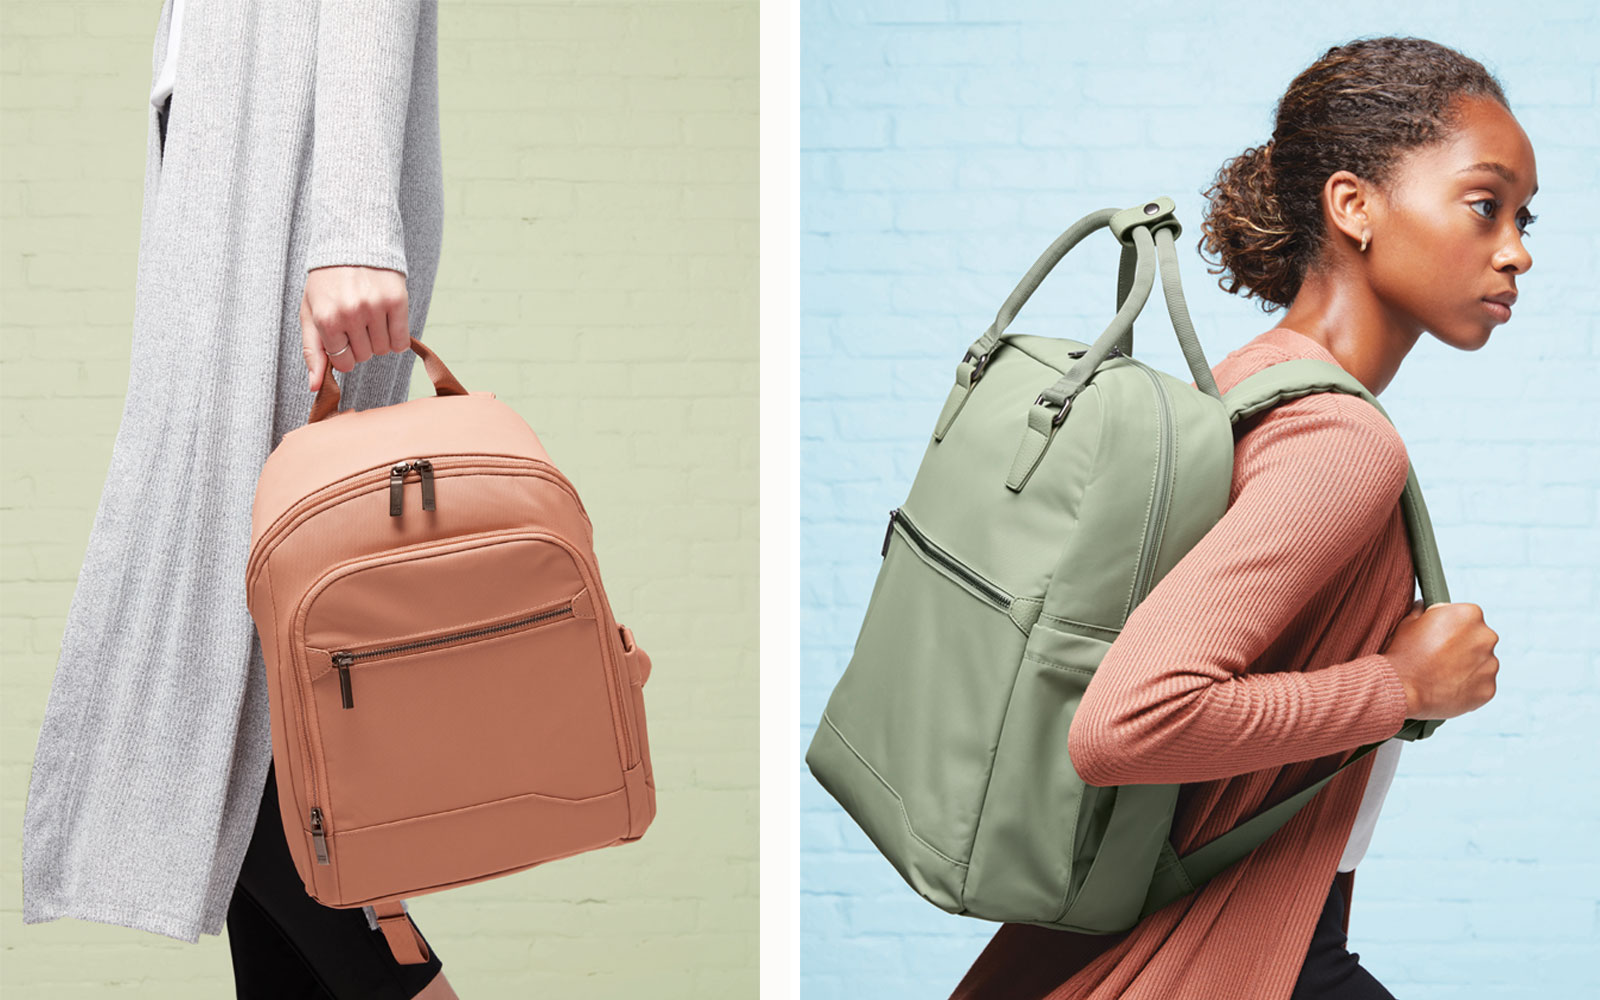 Two Women's Backpacks in Pink Light Pink and Green